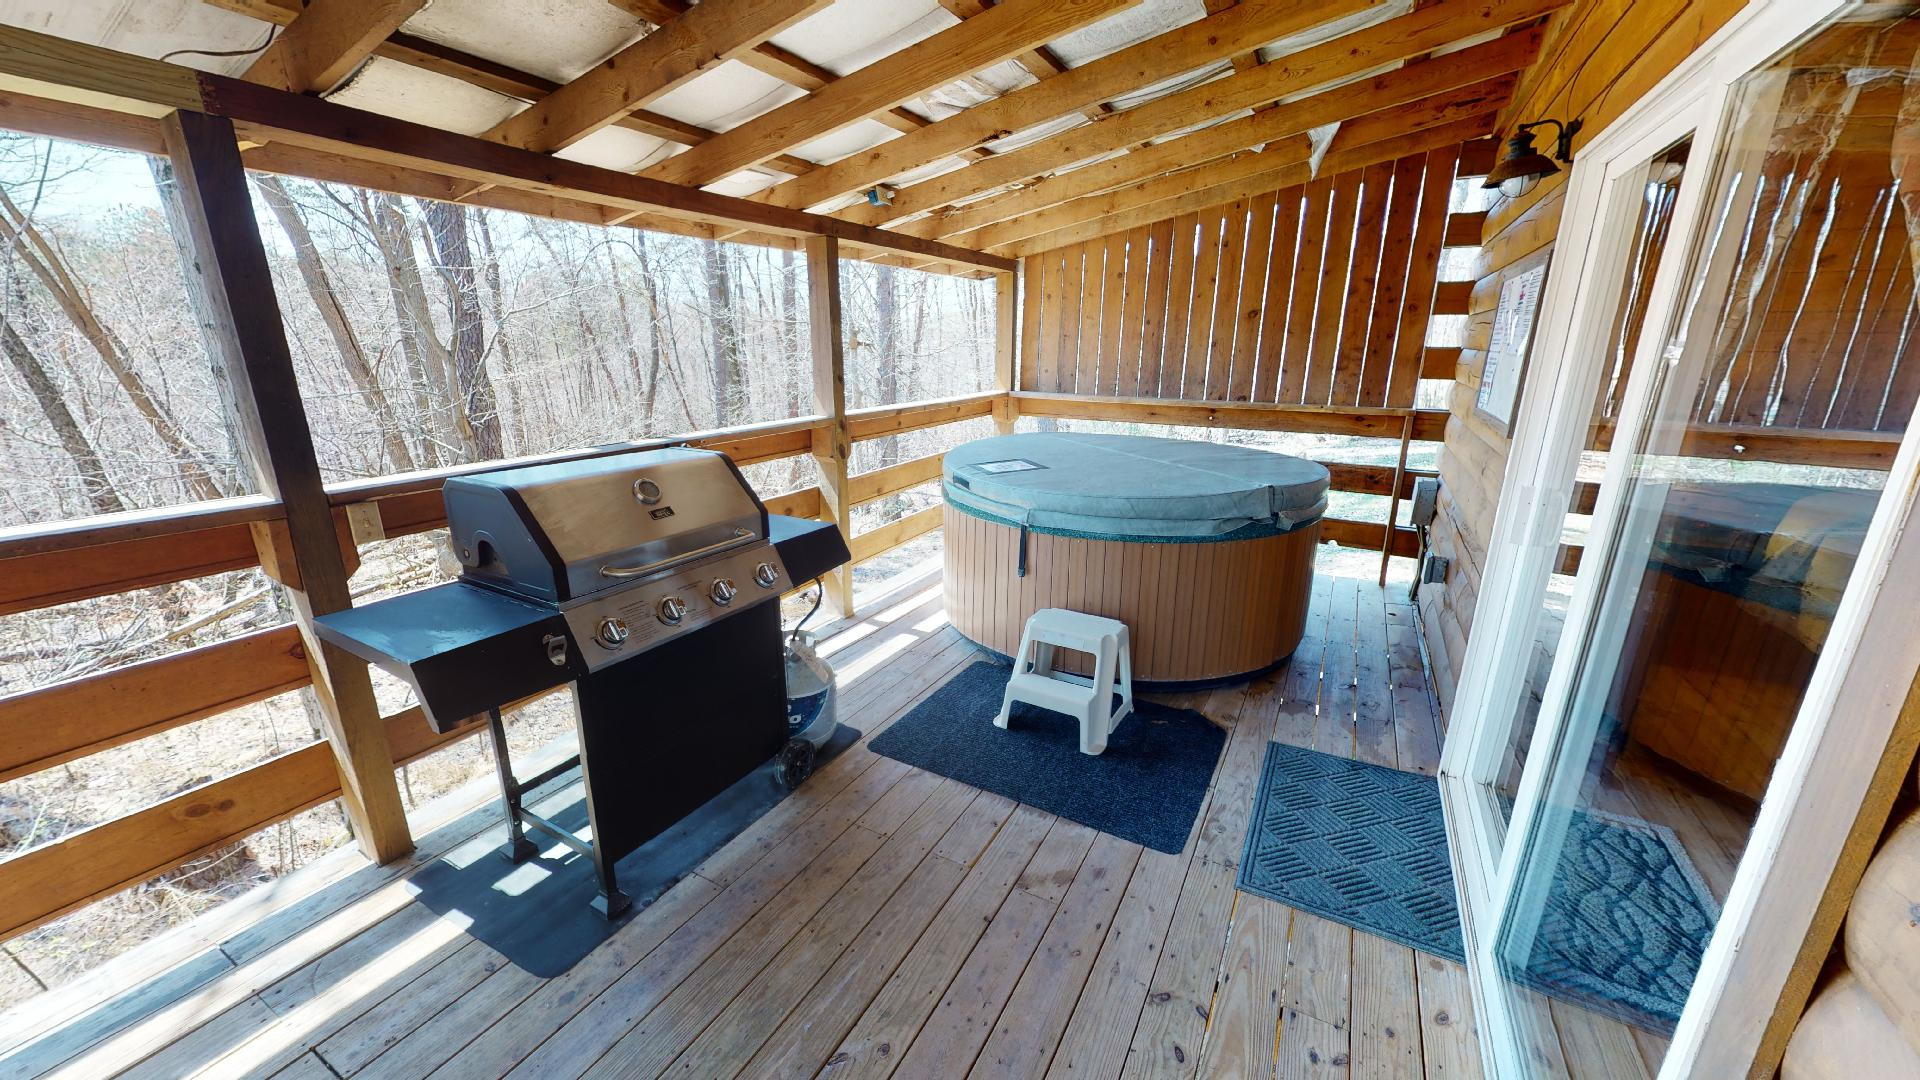 Yesteryear Back Porch - 2 person hot tub and propane grill on the private back porch.